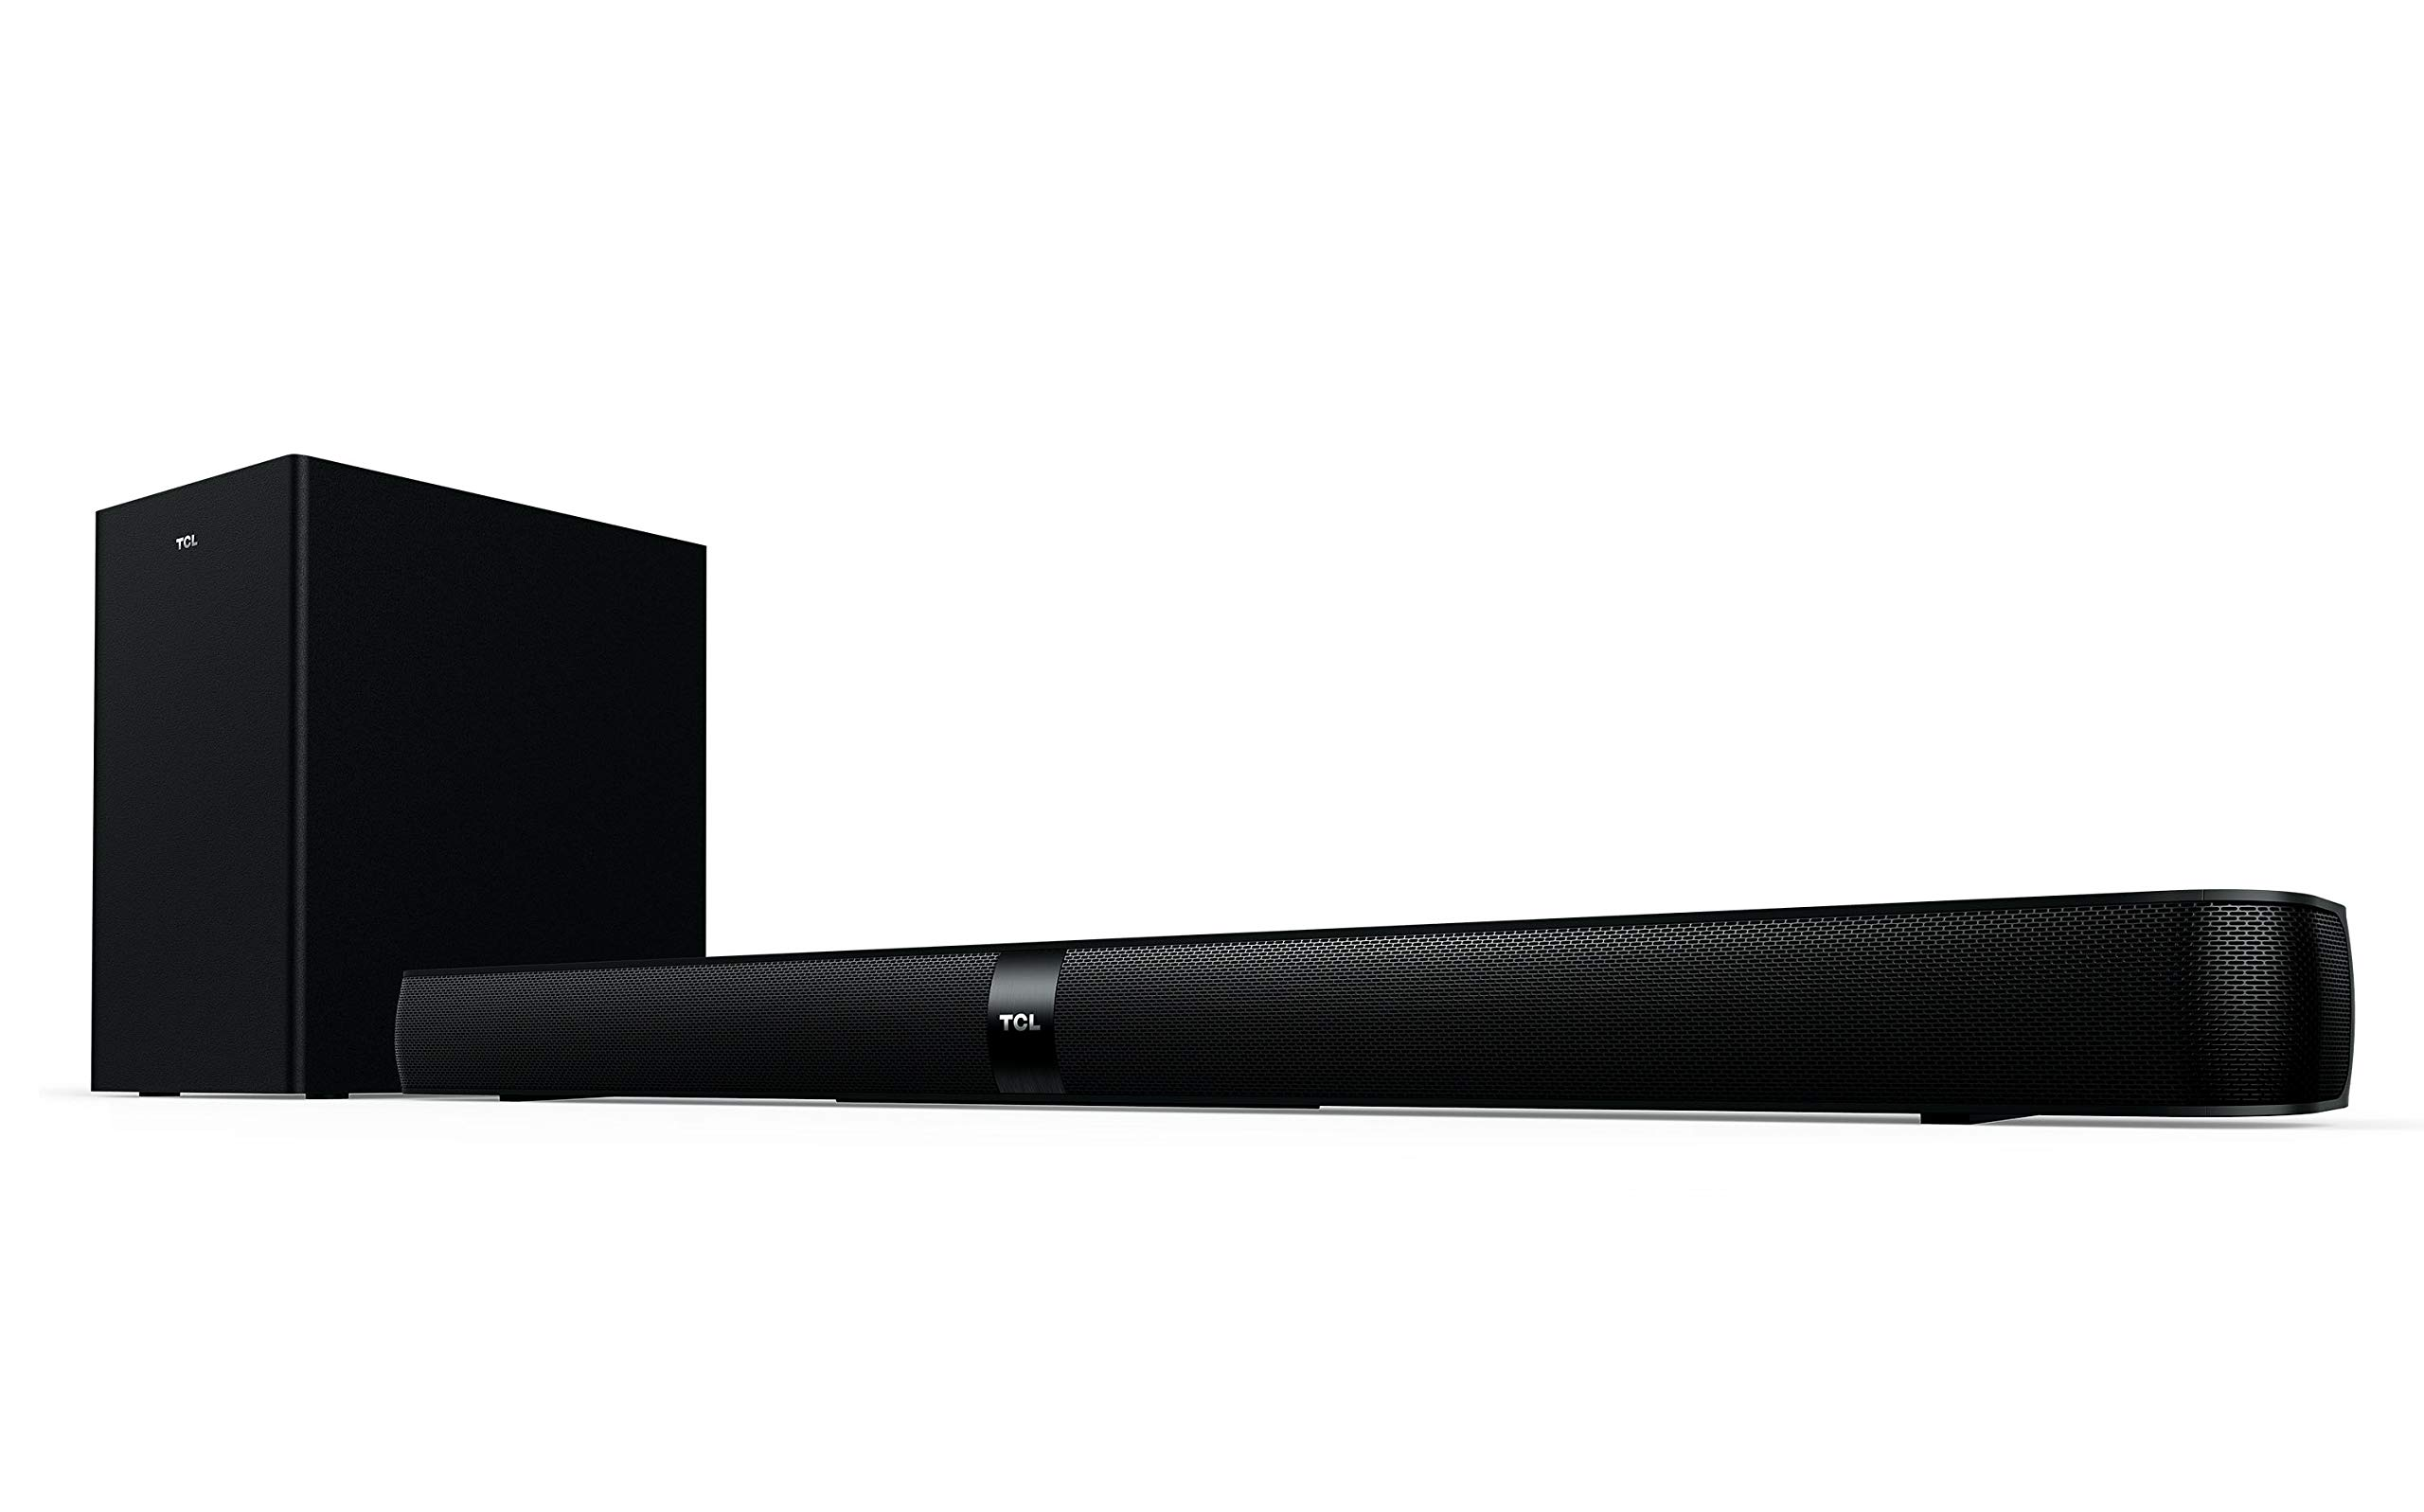 TCL Alto 7+ 2.1 Channel Home Theater Sound Bar with Wireless Subwoofer - TS7010, 36'', Black by TCL